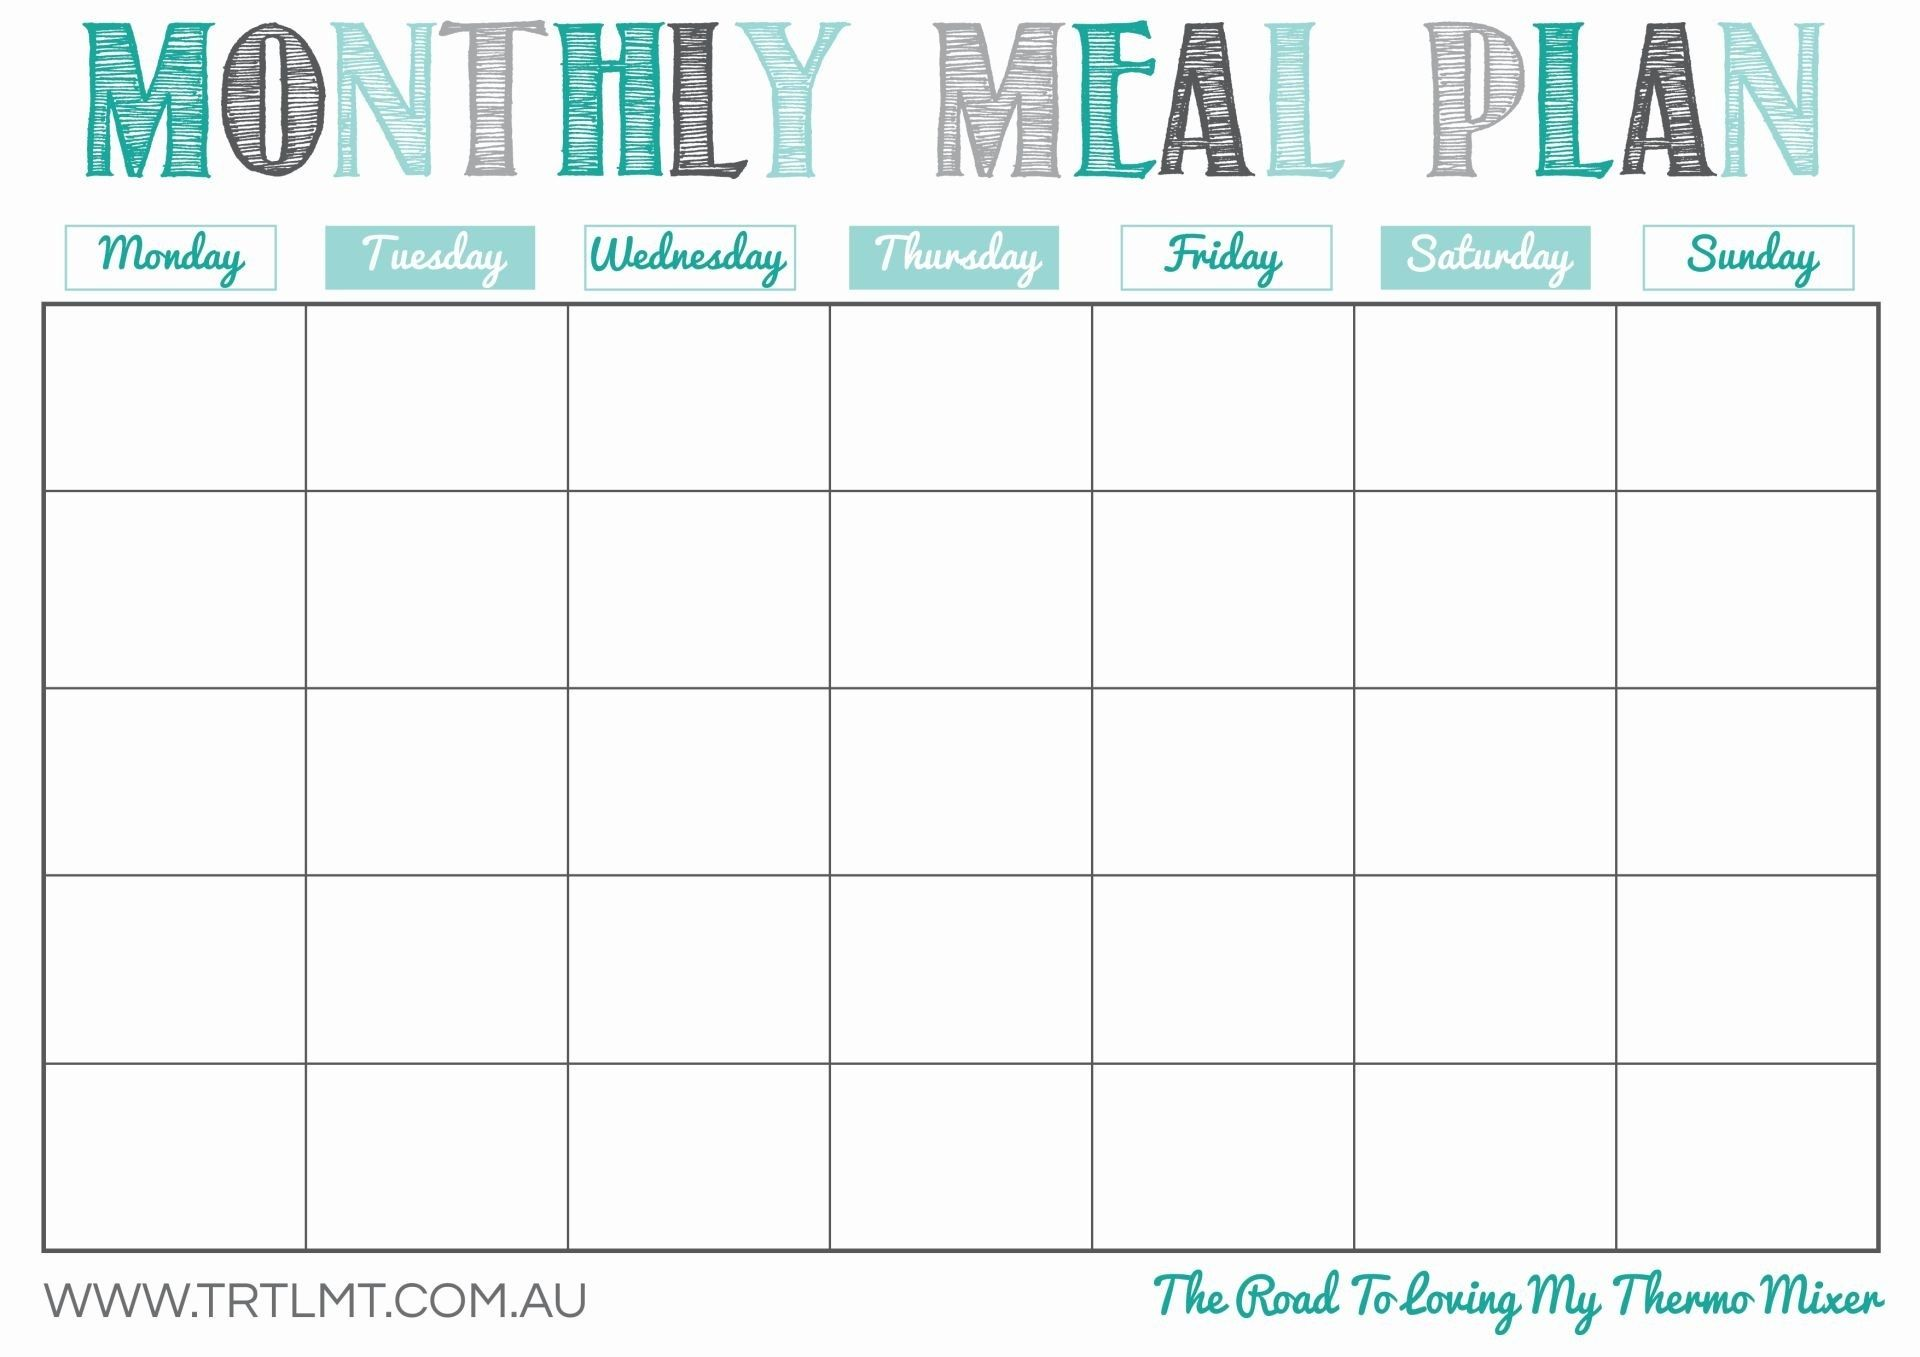 Monthly Meal Plan template printable. undated so you can use it